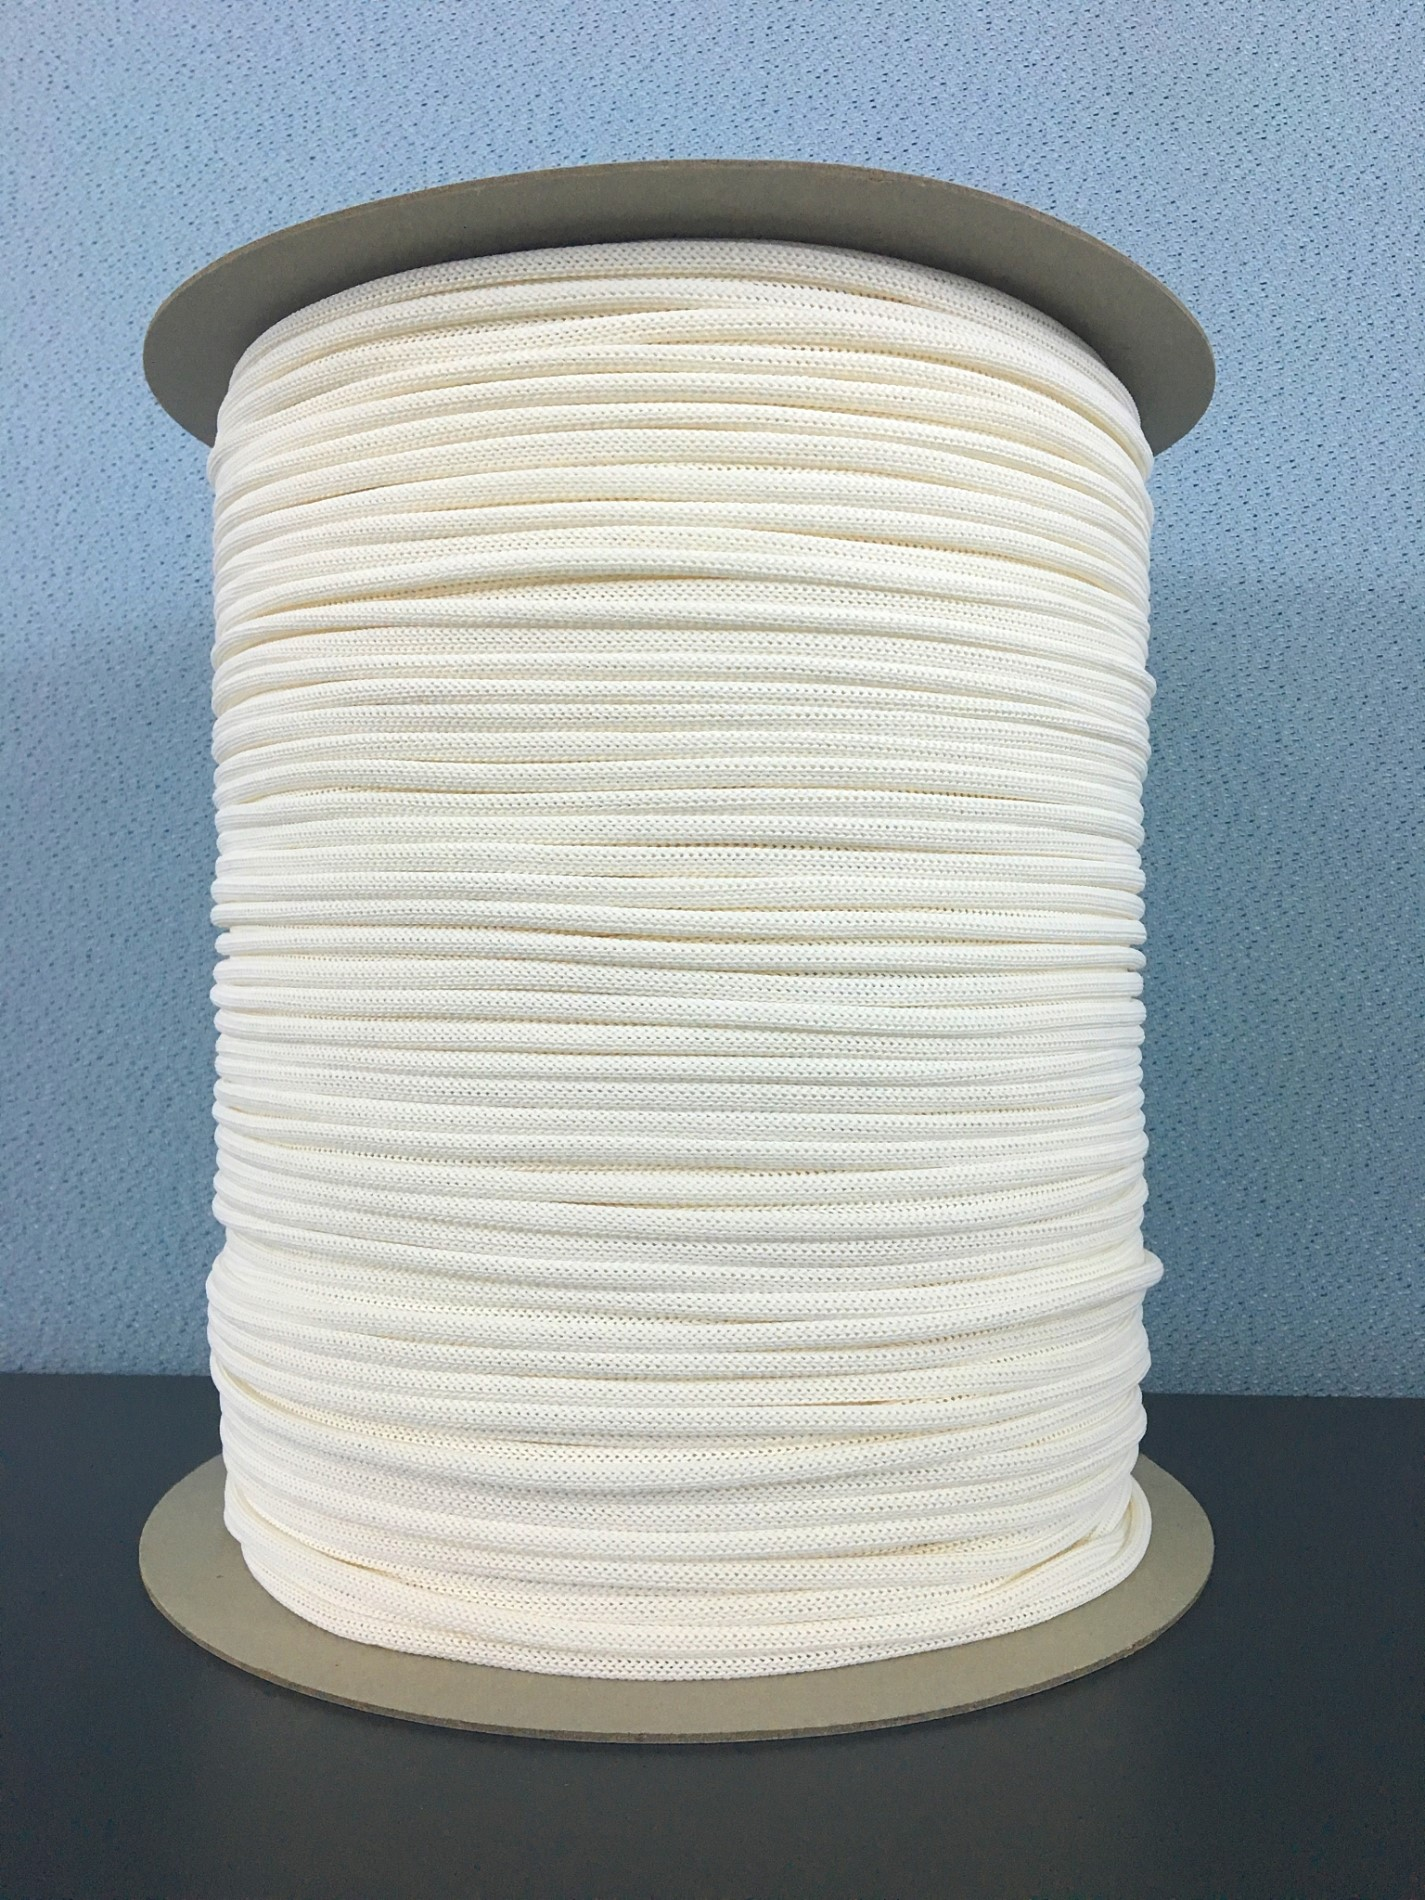 100% paper material braid rope,knitted paper rope, for paper bags Manufacturers, 100% paper material braid rope,knitted paper rope, for paper bags Factory, Supply 100% paper material braid rope,knitted paper rope, for paper bags